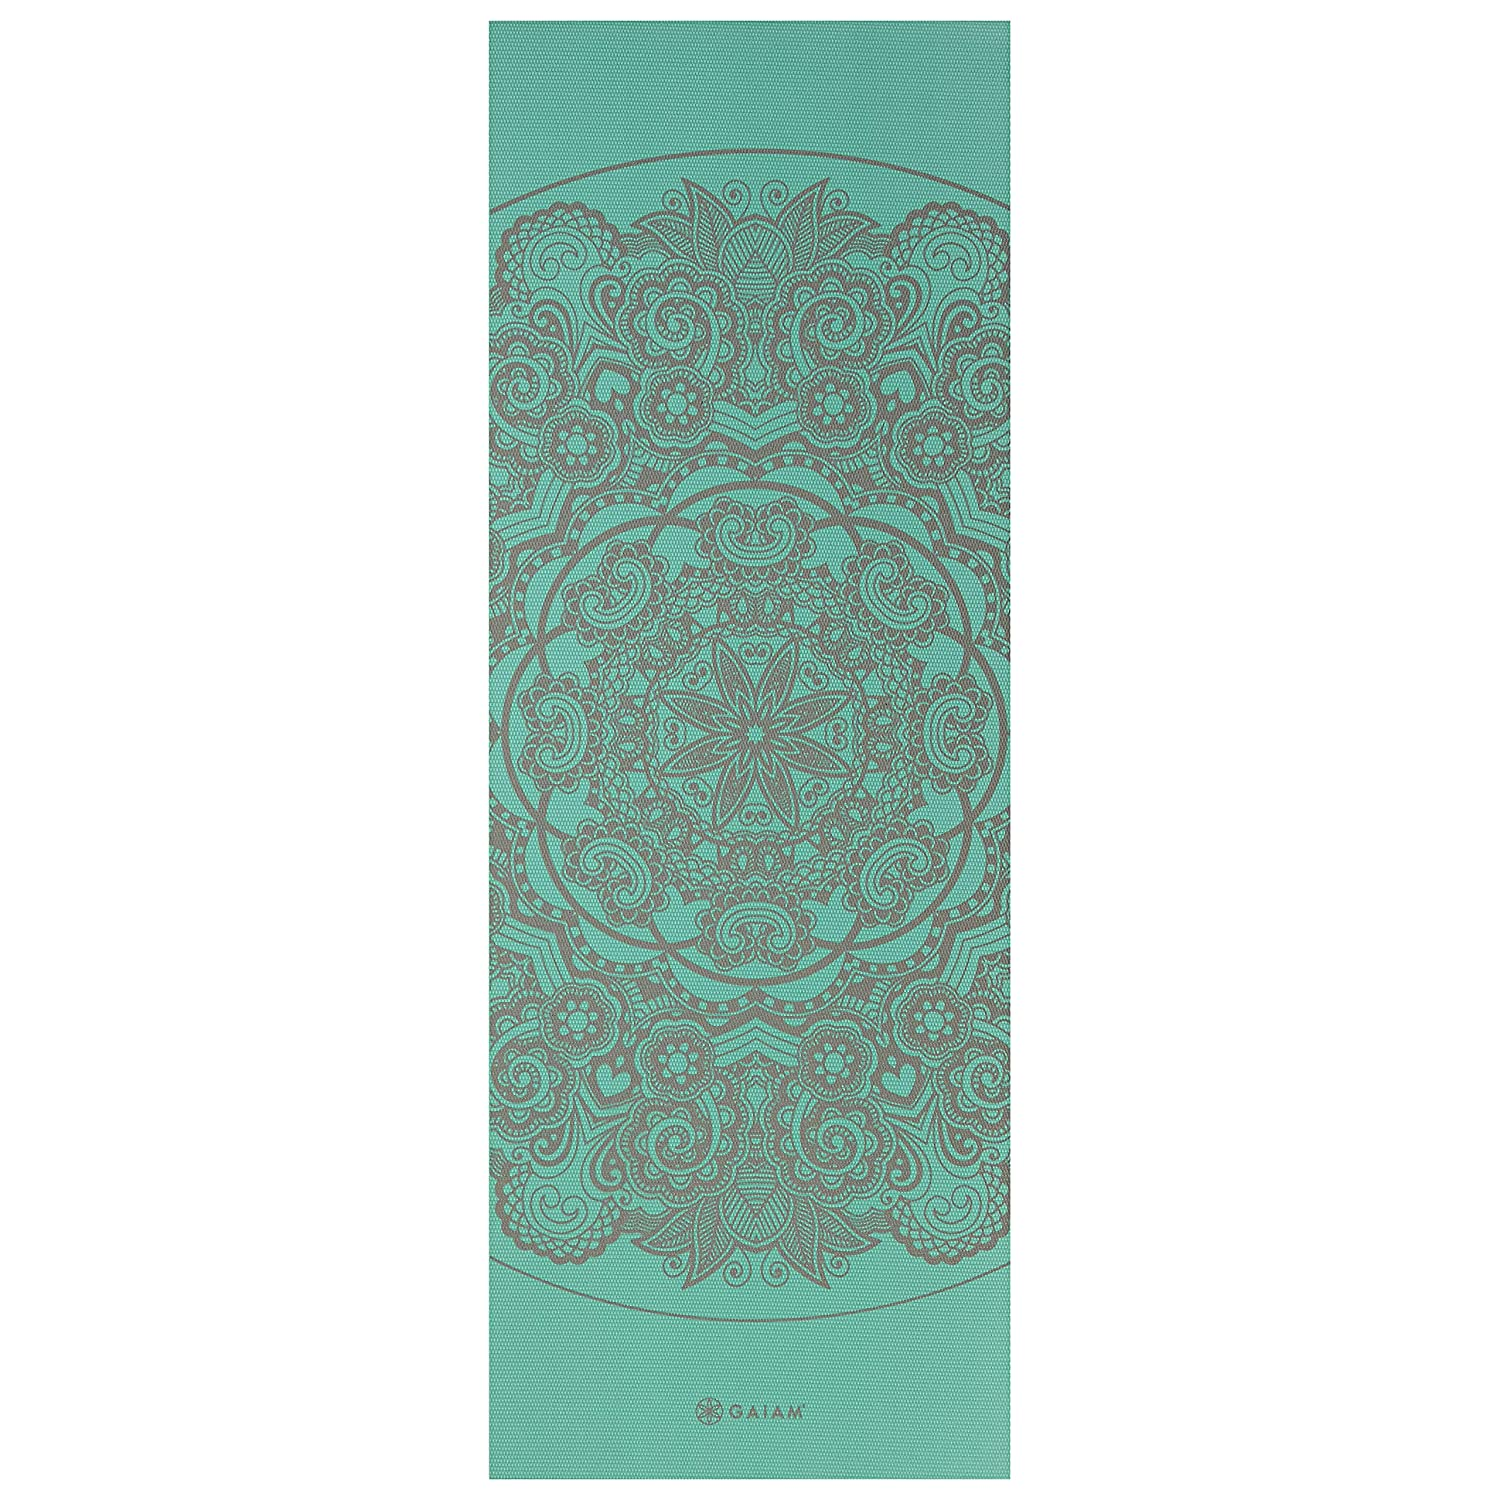 Premium 6mm Print Extra Thick Exercise /& Fitness Mat for All Types of Yoga Pilates /& Floor Exercises Medallion Sea Fit For Life 05-63136 68 x 24 x 6mm Thick Gaiam Yoga Mat